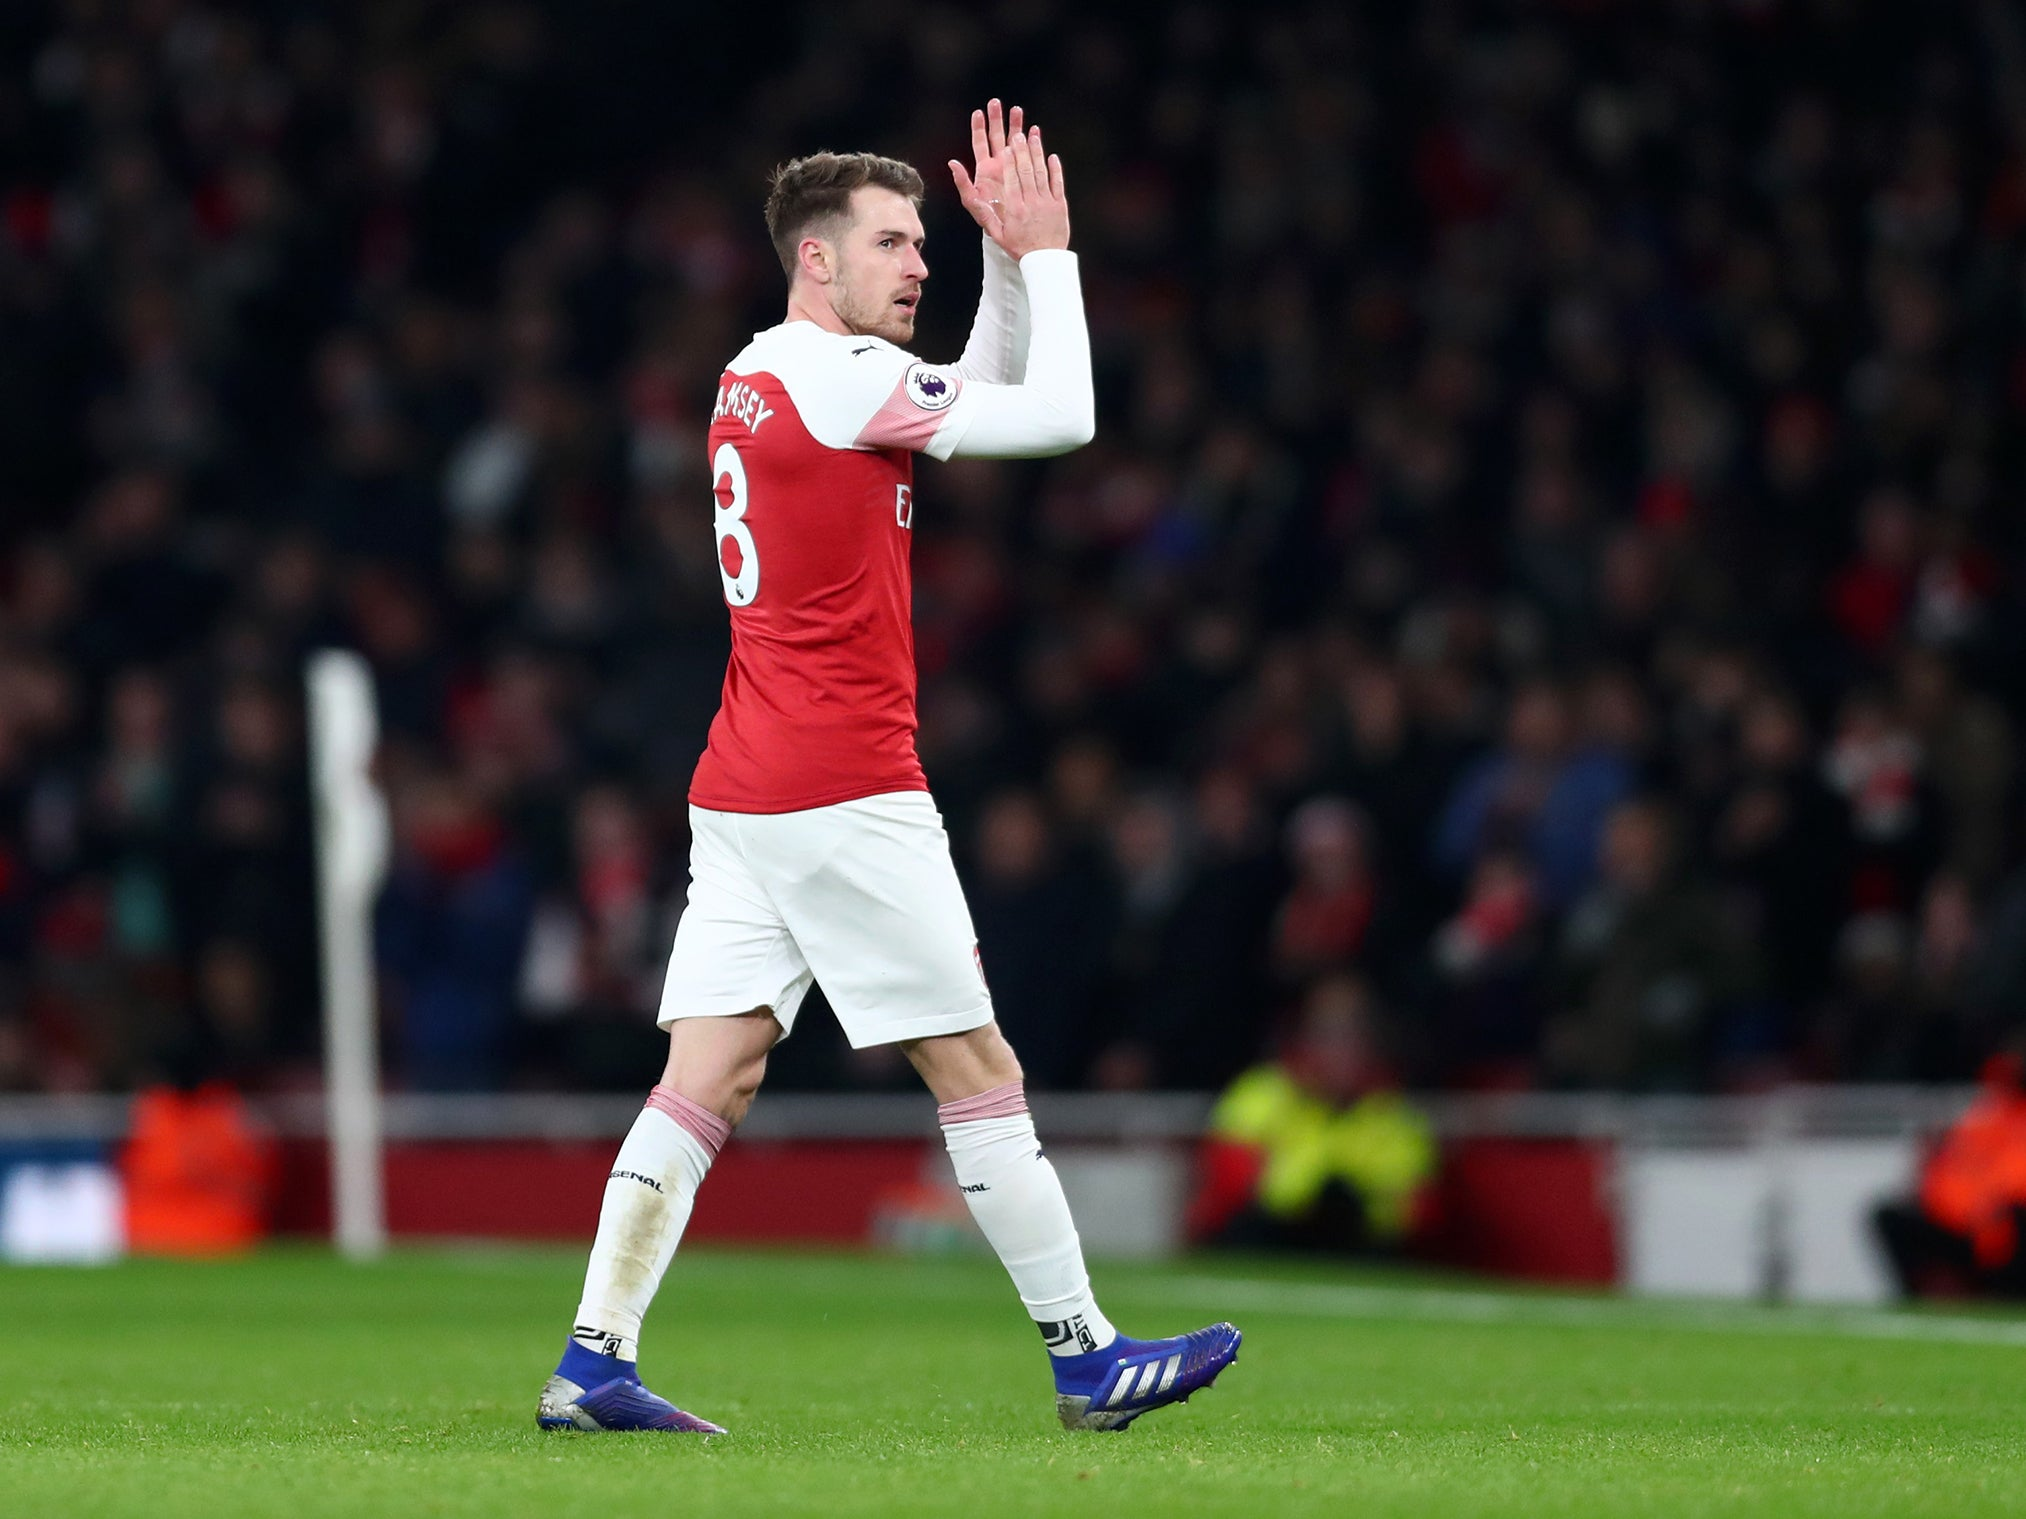 Arsenal news: Unai Emery delighted with Aaron Ramsey's attitude ahead of Juventus free transfer